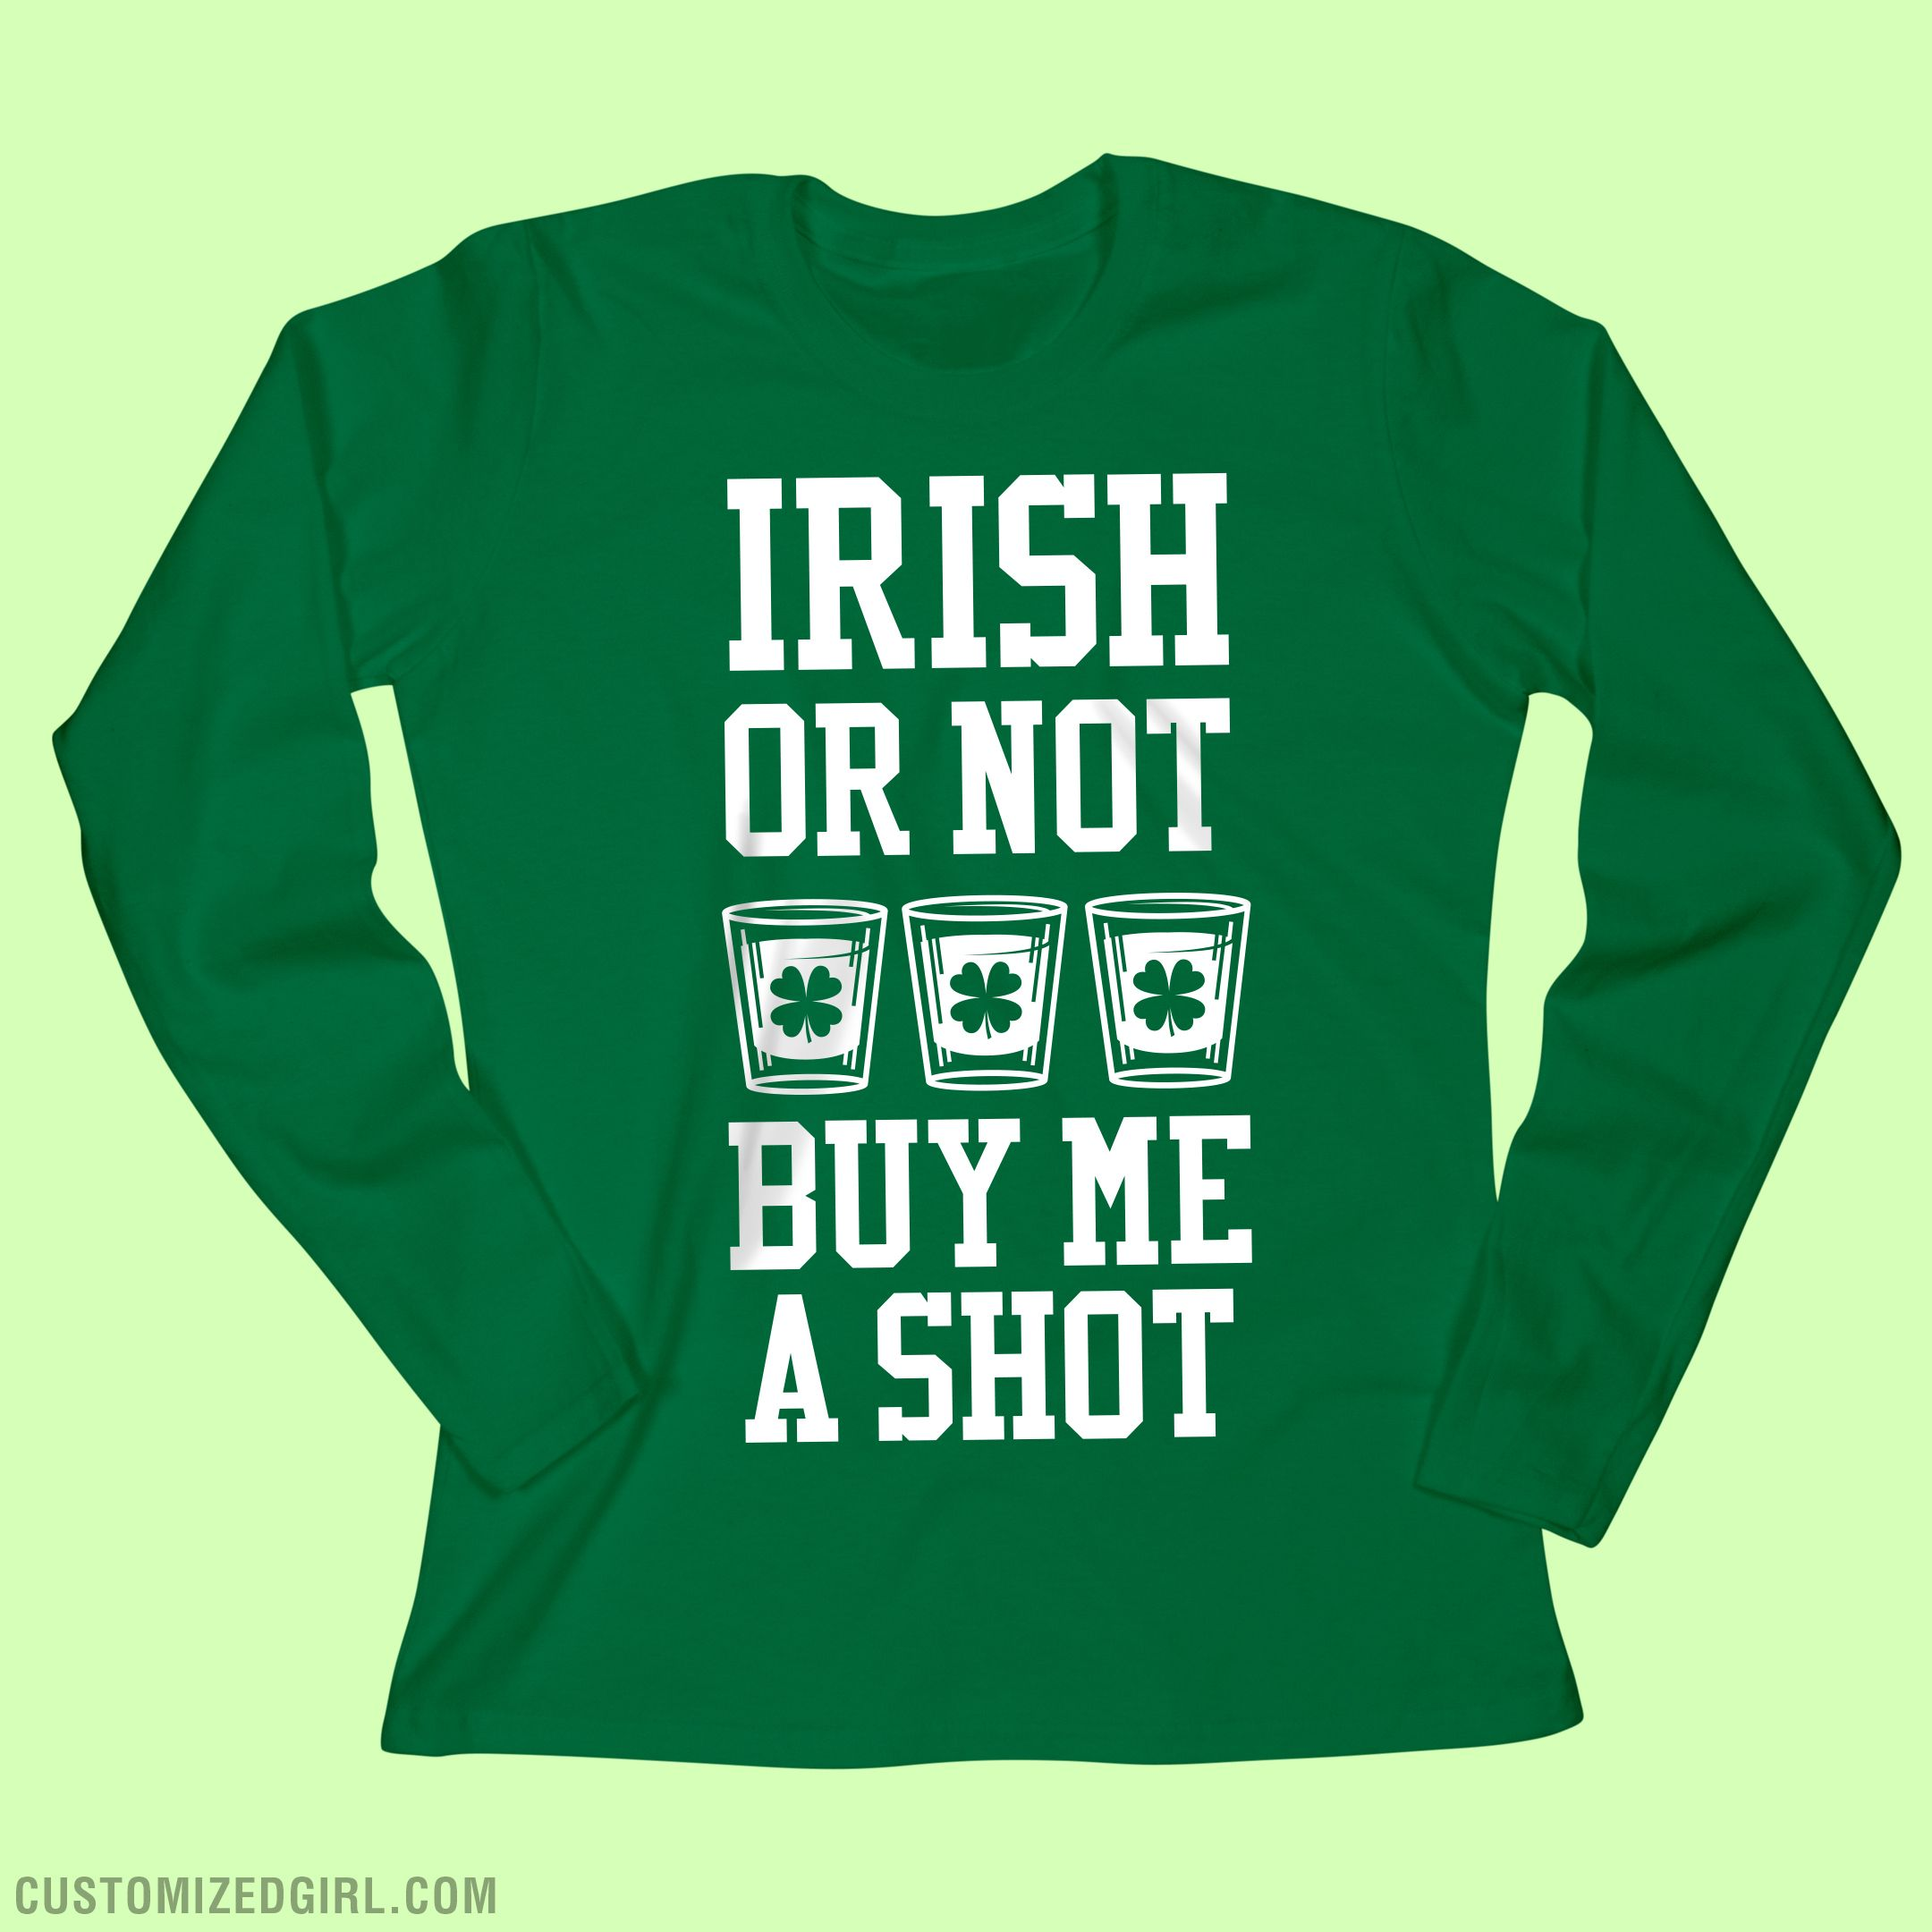 54247abd5 #stpatricksday #green Irish or not, buy me a shot. This girl does not want  to go thirsty on St. Patrick's Day. Wear this funny long sleeve shirt ...